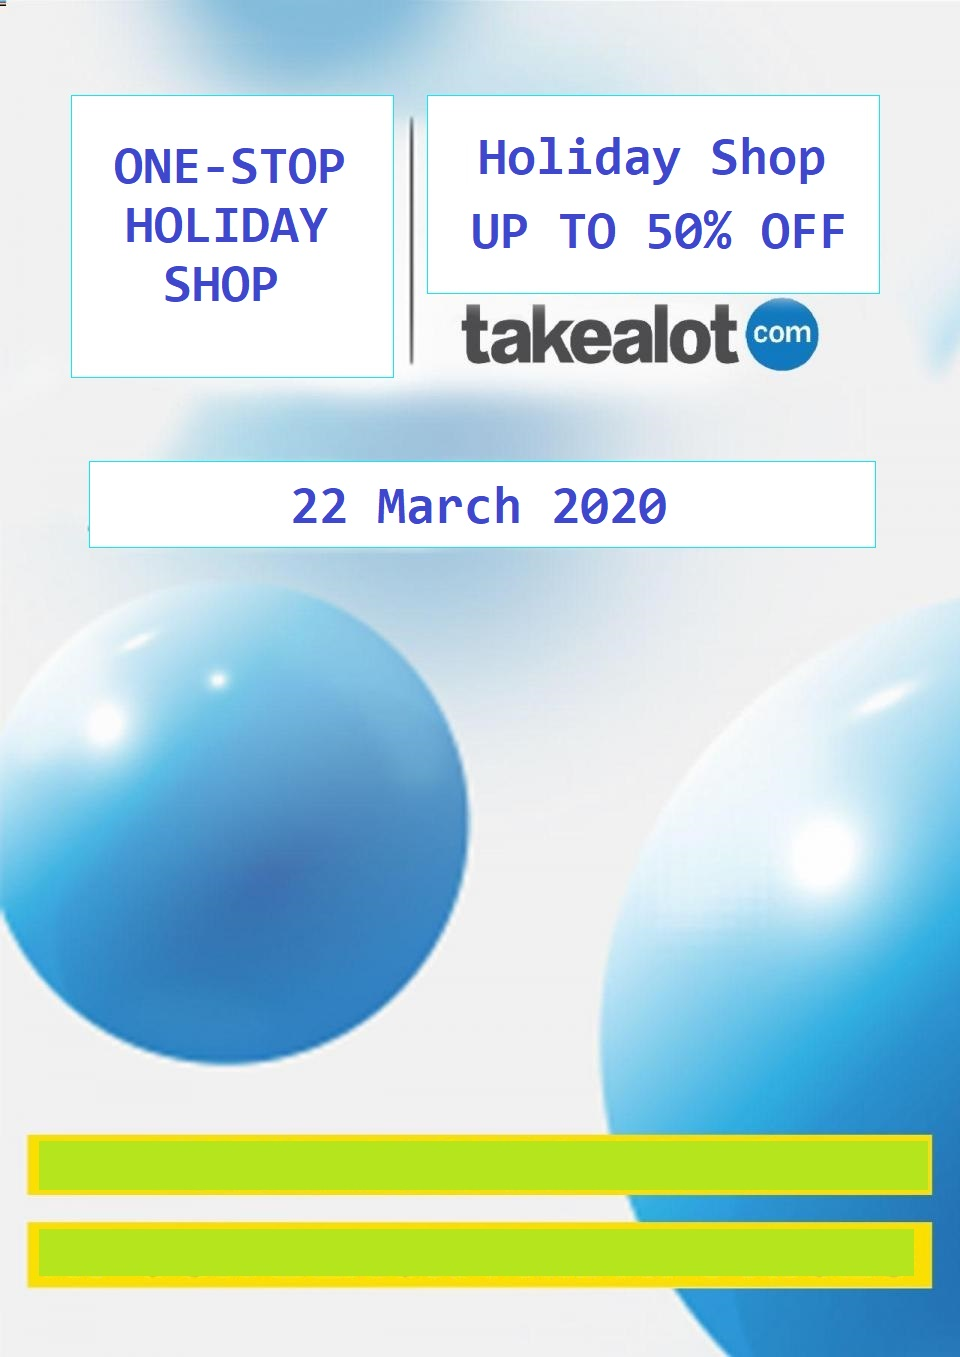 Takealot Specials Holiday Shopping Sale 22 March 2020